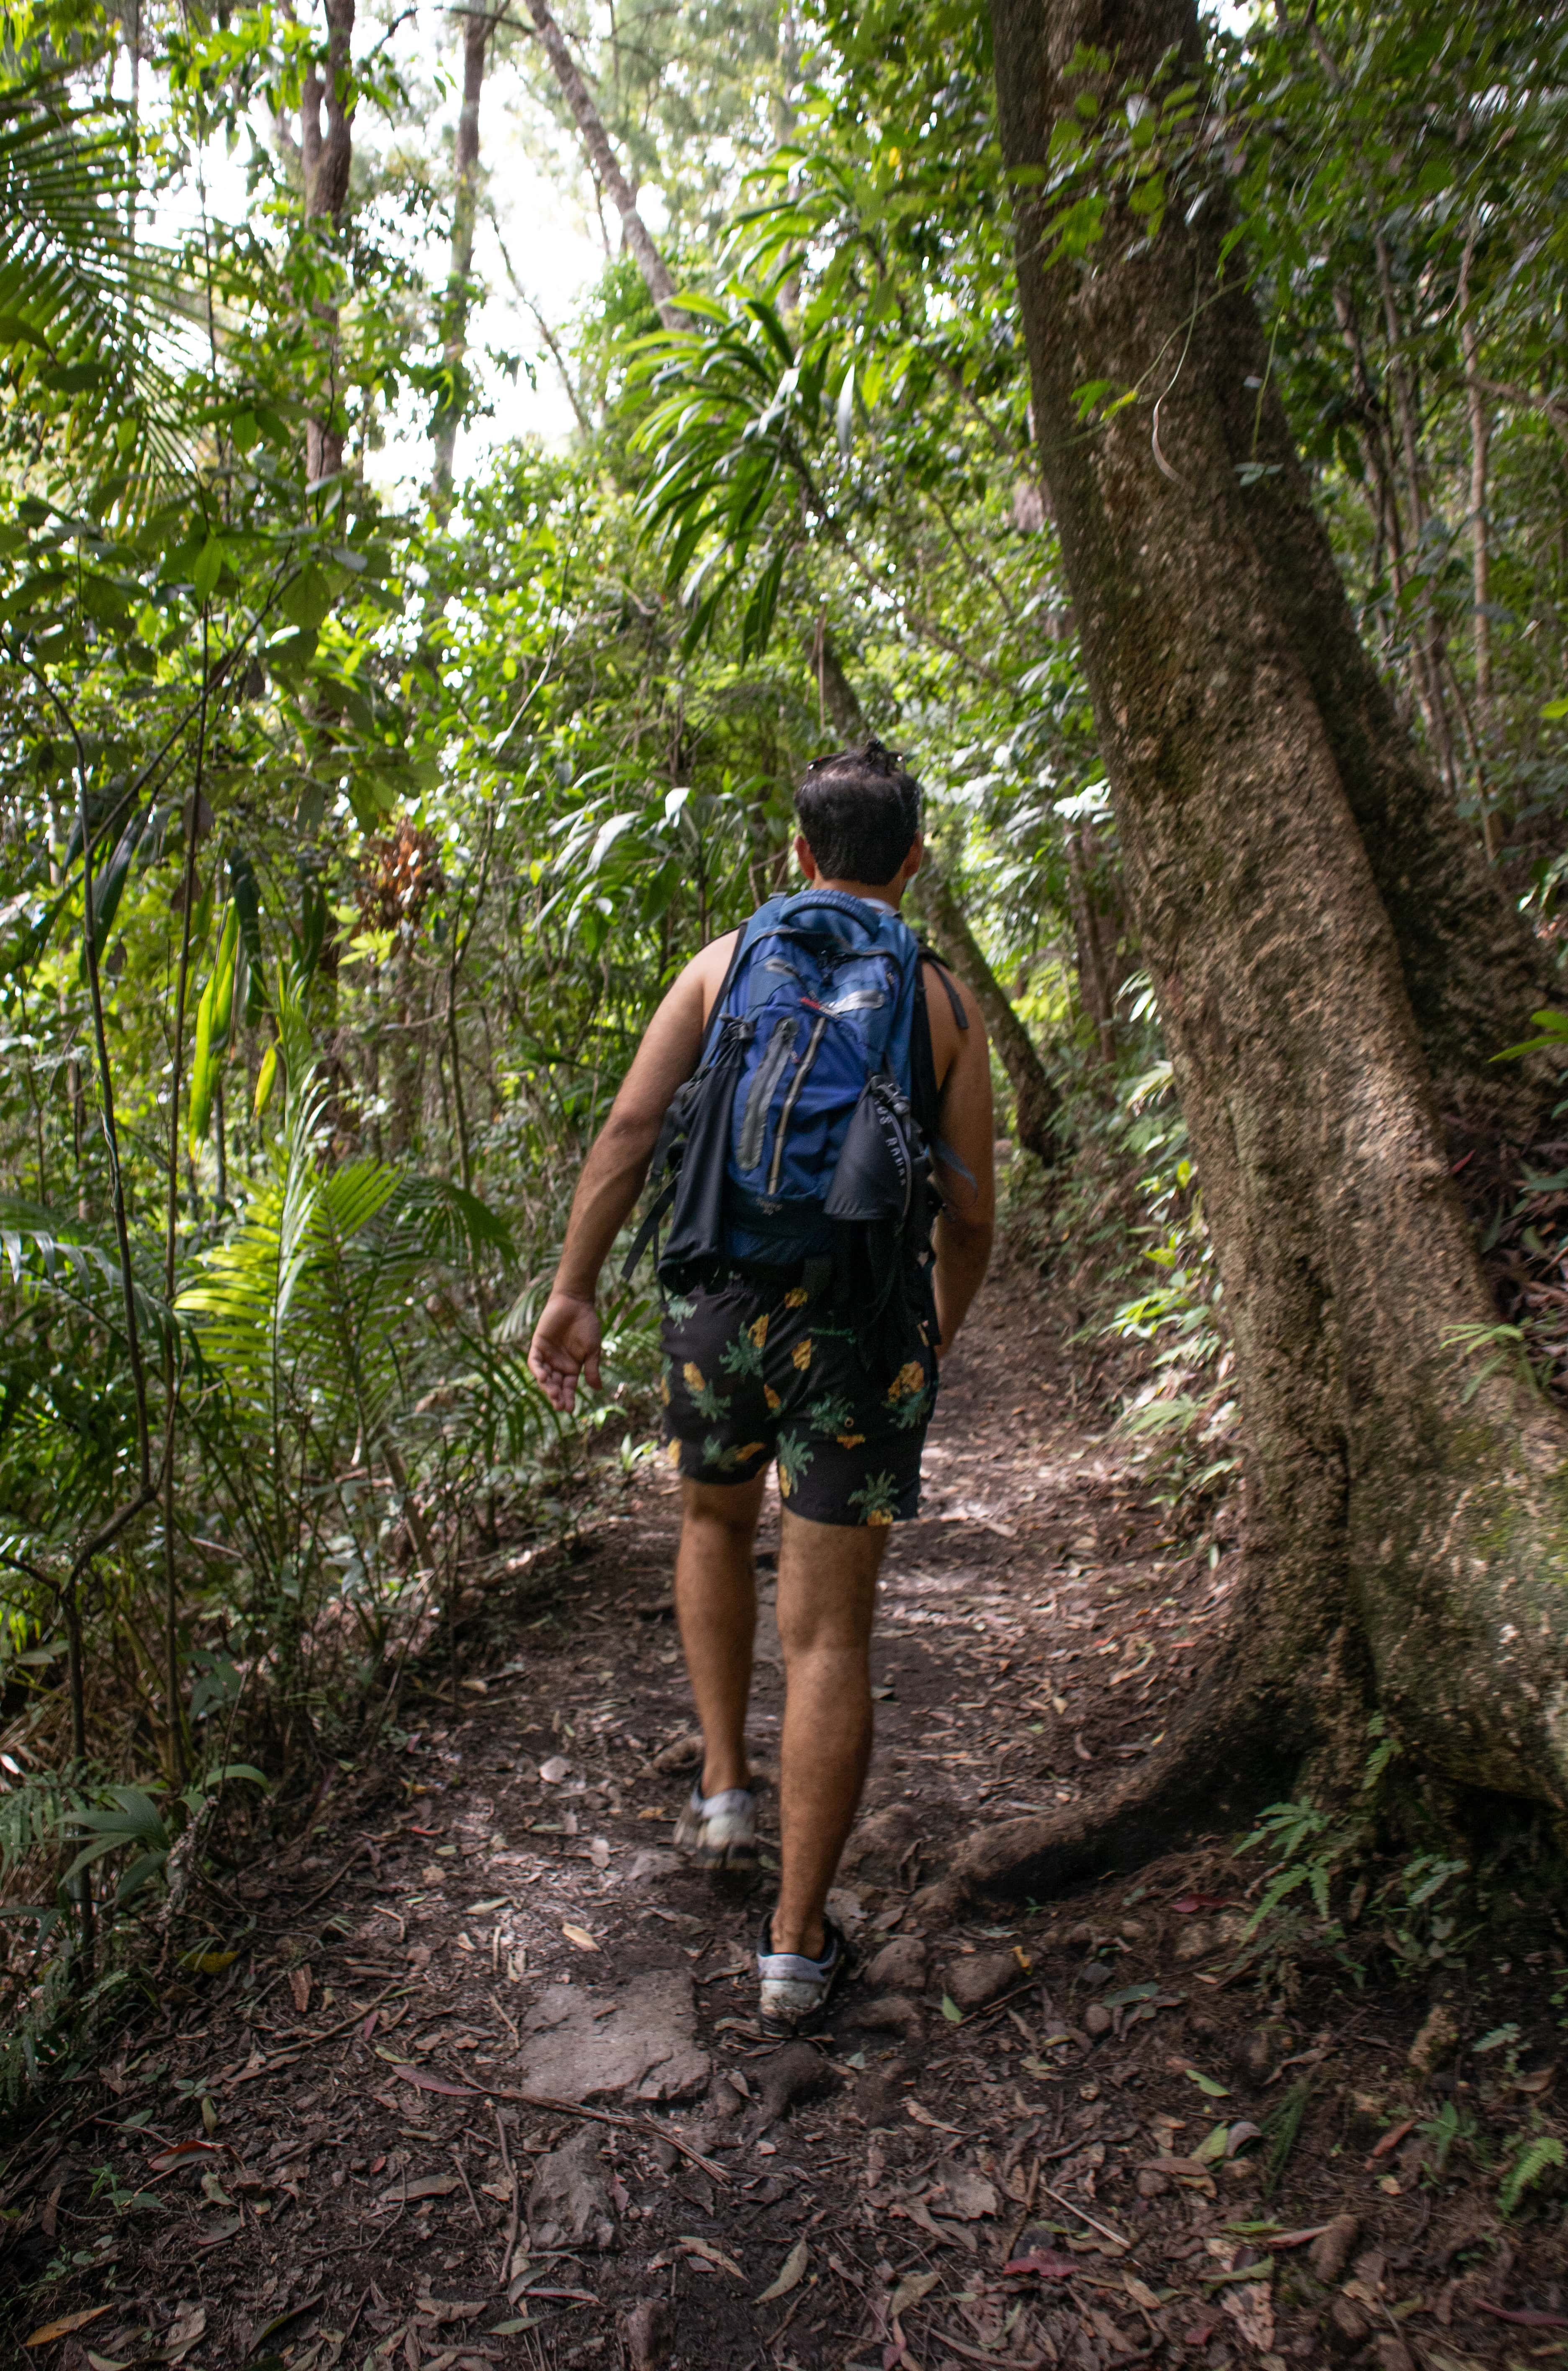 Man carrying a backpack walking on a trail through the rainforest